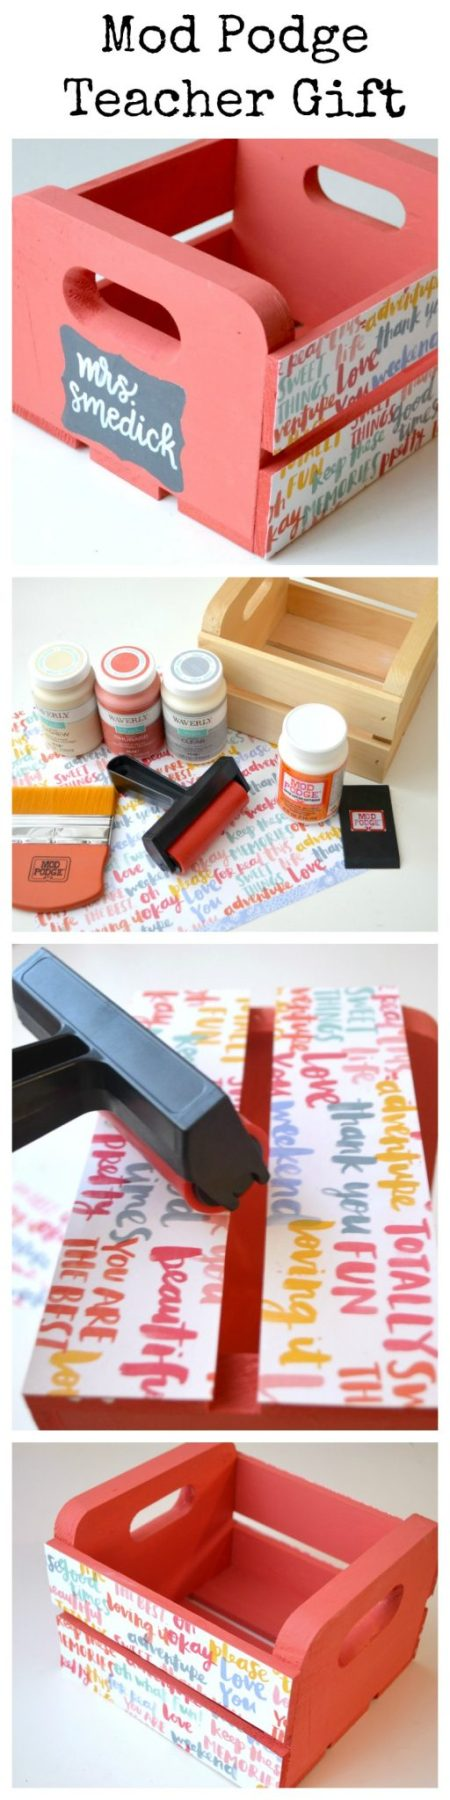 Mod Podge Teacher Gift